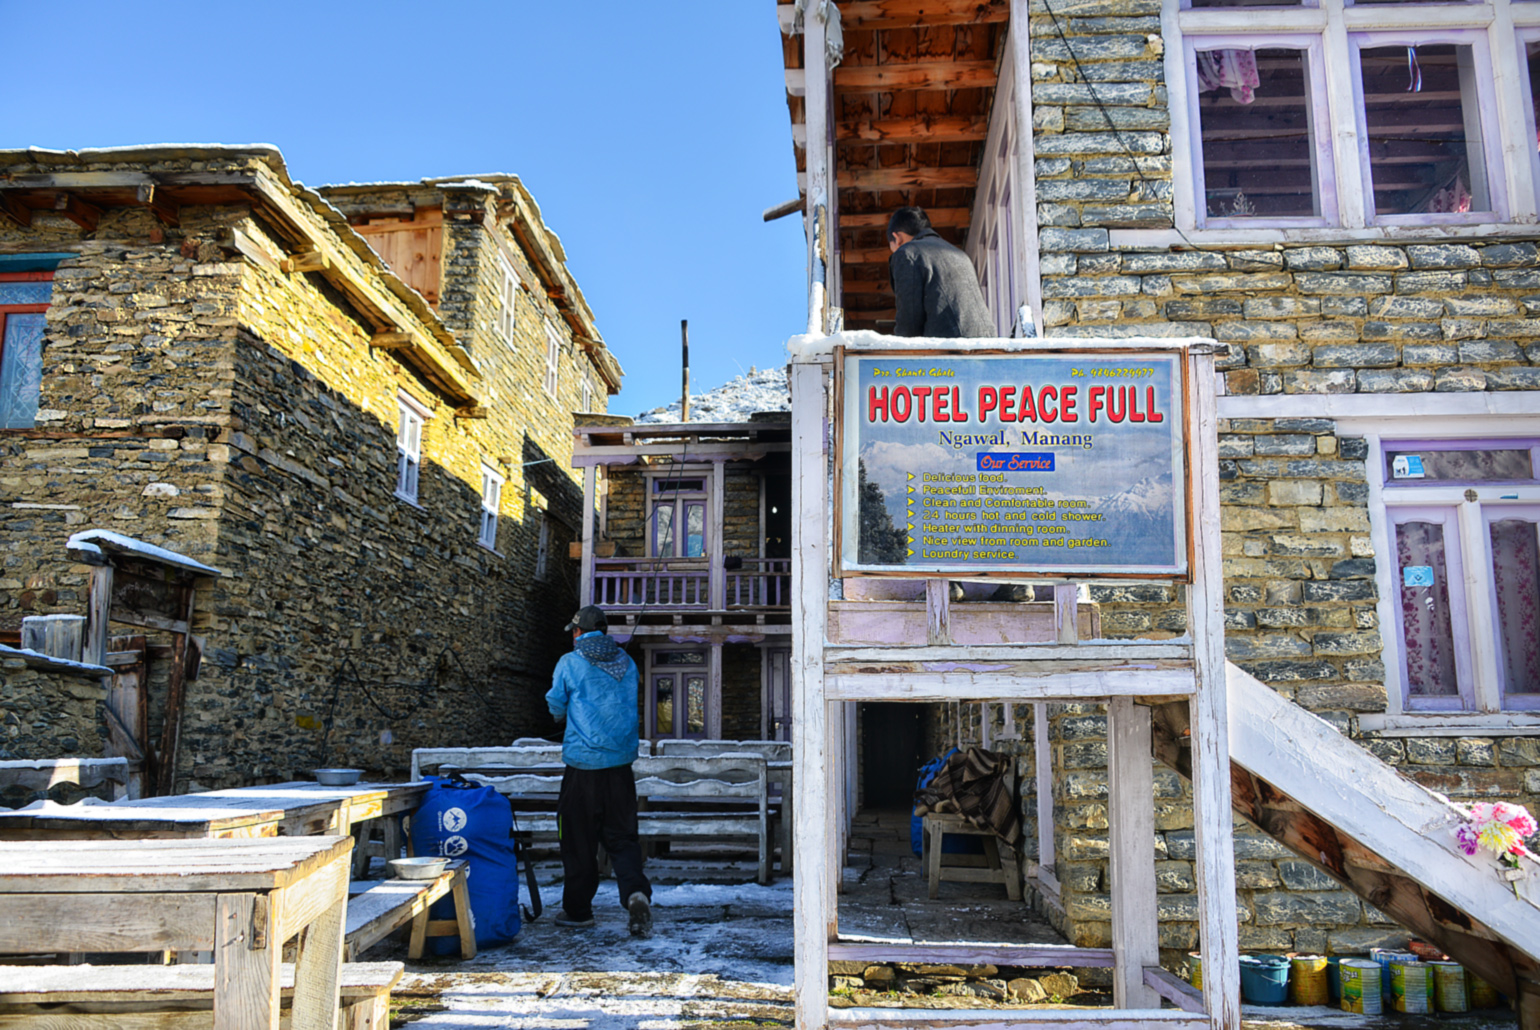 Hotel Peace Full in Ngawal